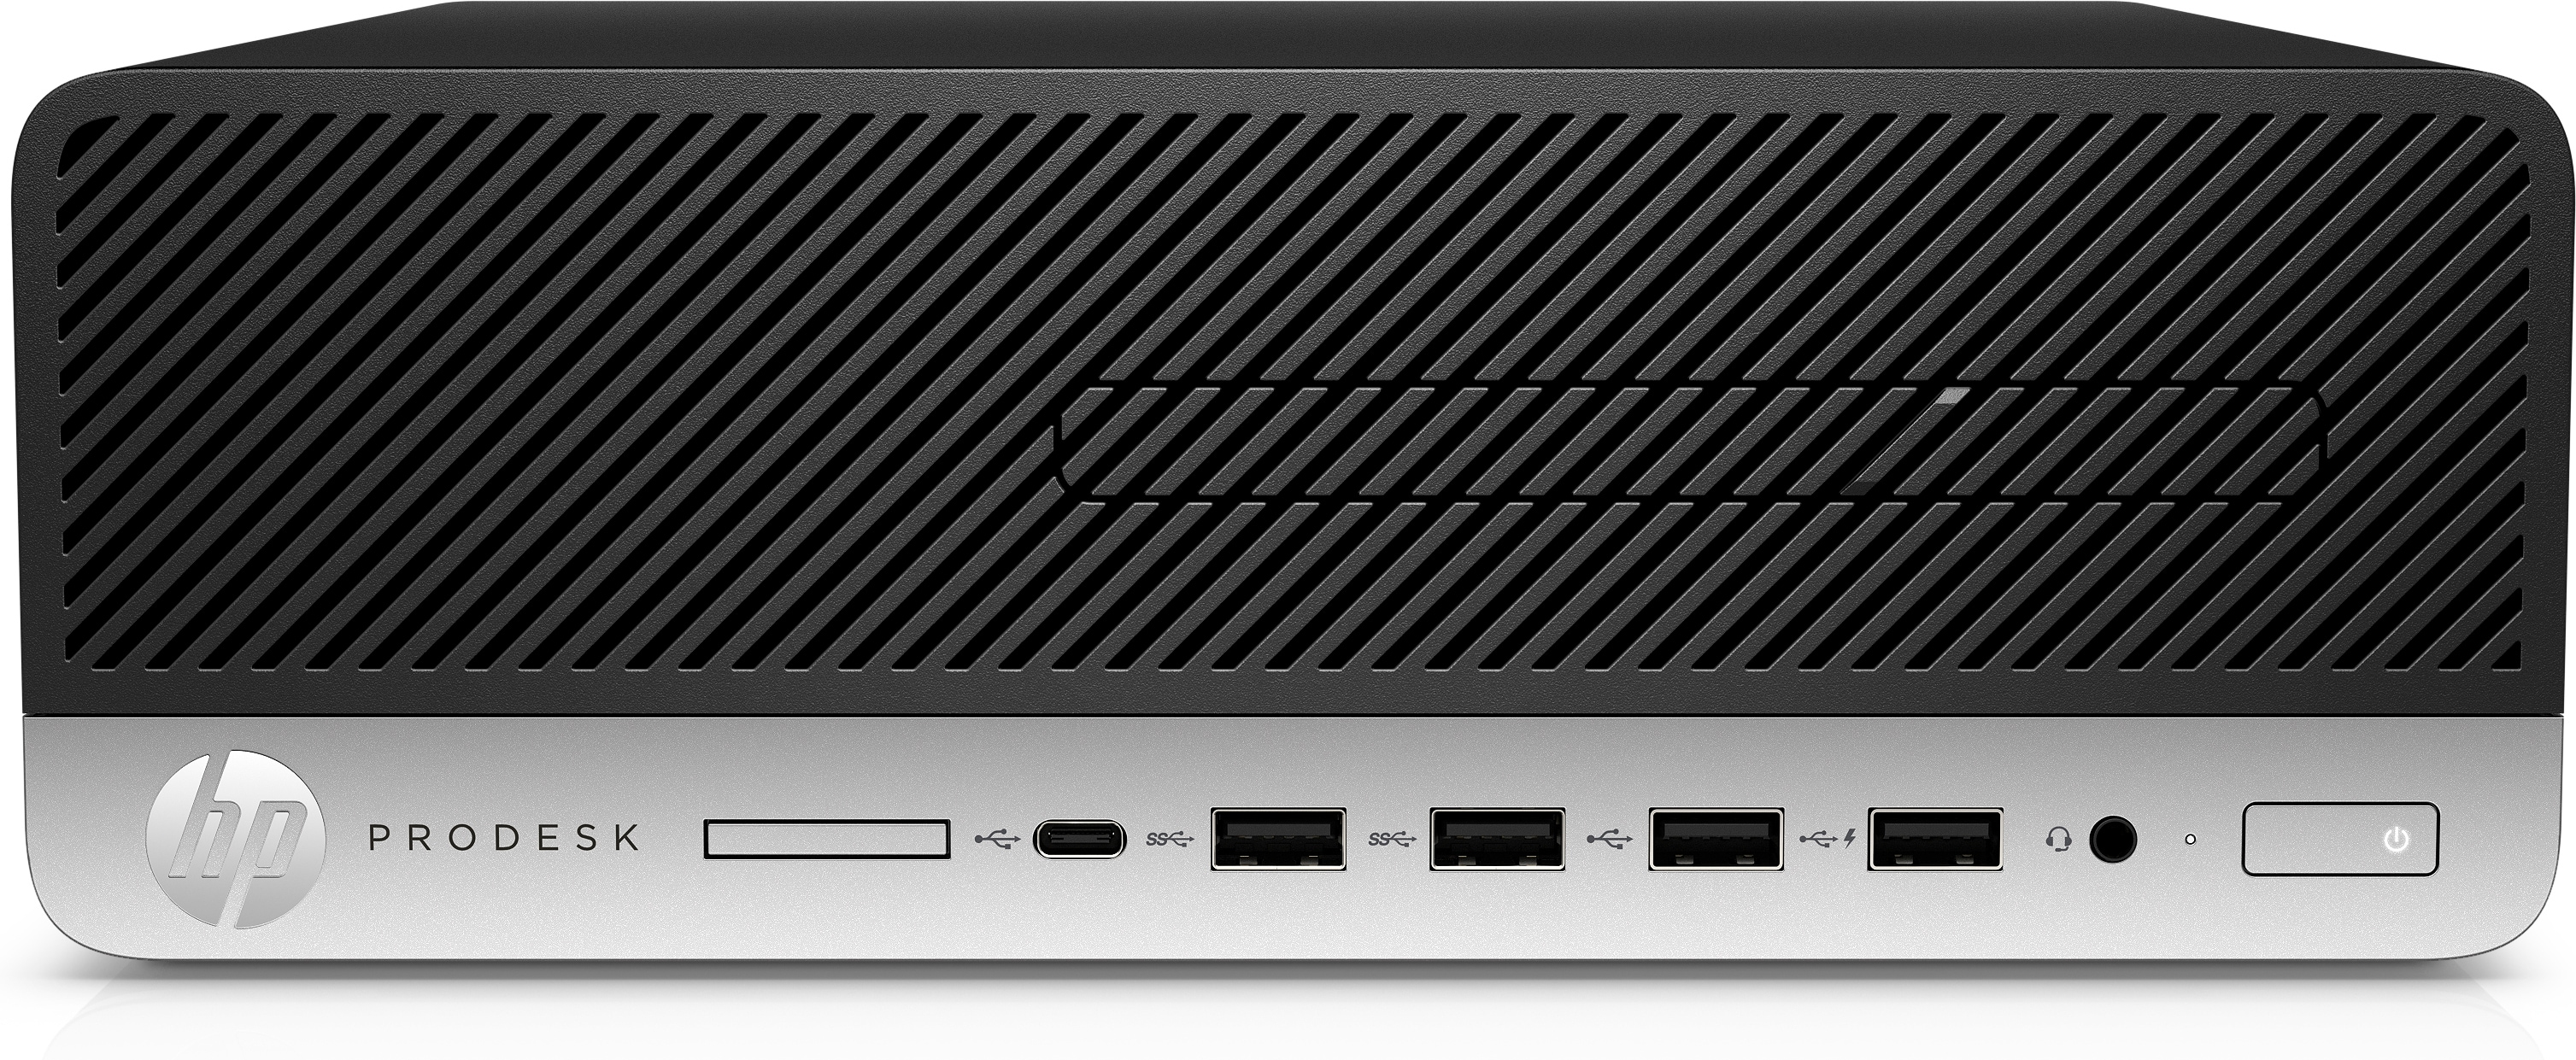 HP ProDesk 600 G5 - Thin Client - Core i5 3 GHz - RAM: 8 GB DDR4 - HDD: 256 GB NVMe - UHD Graphics 600